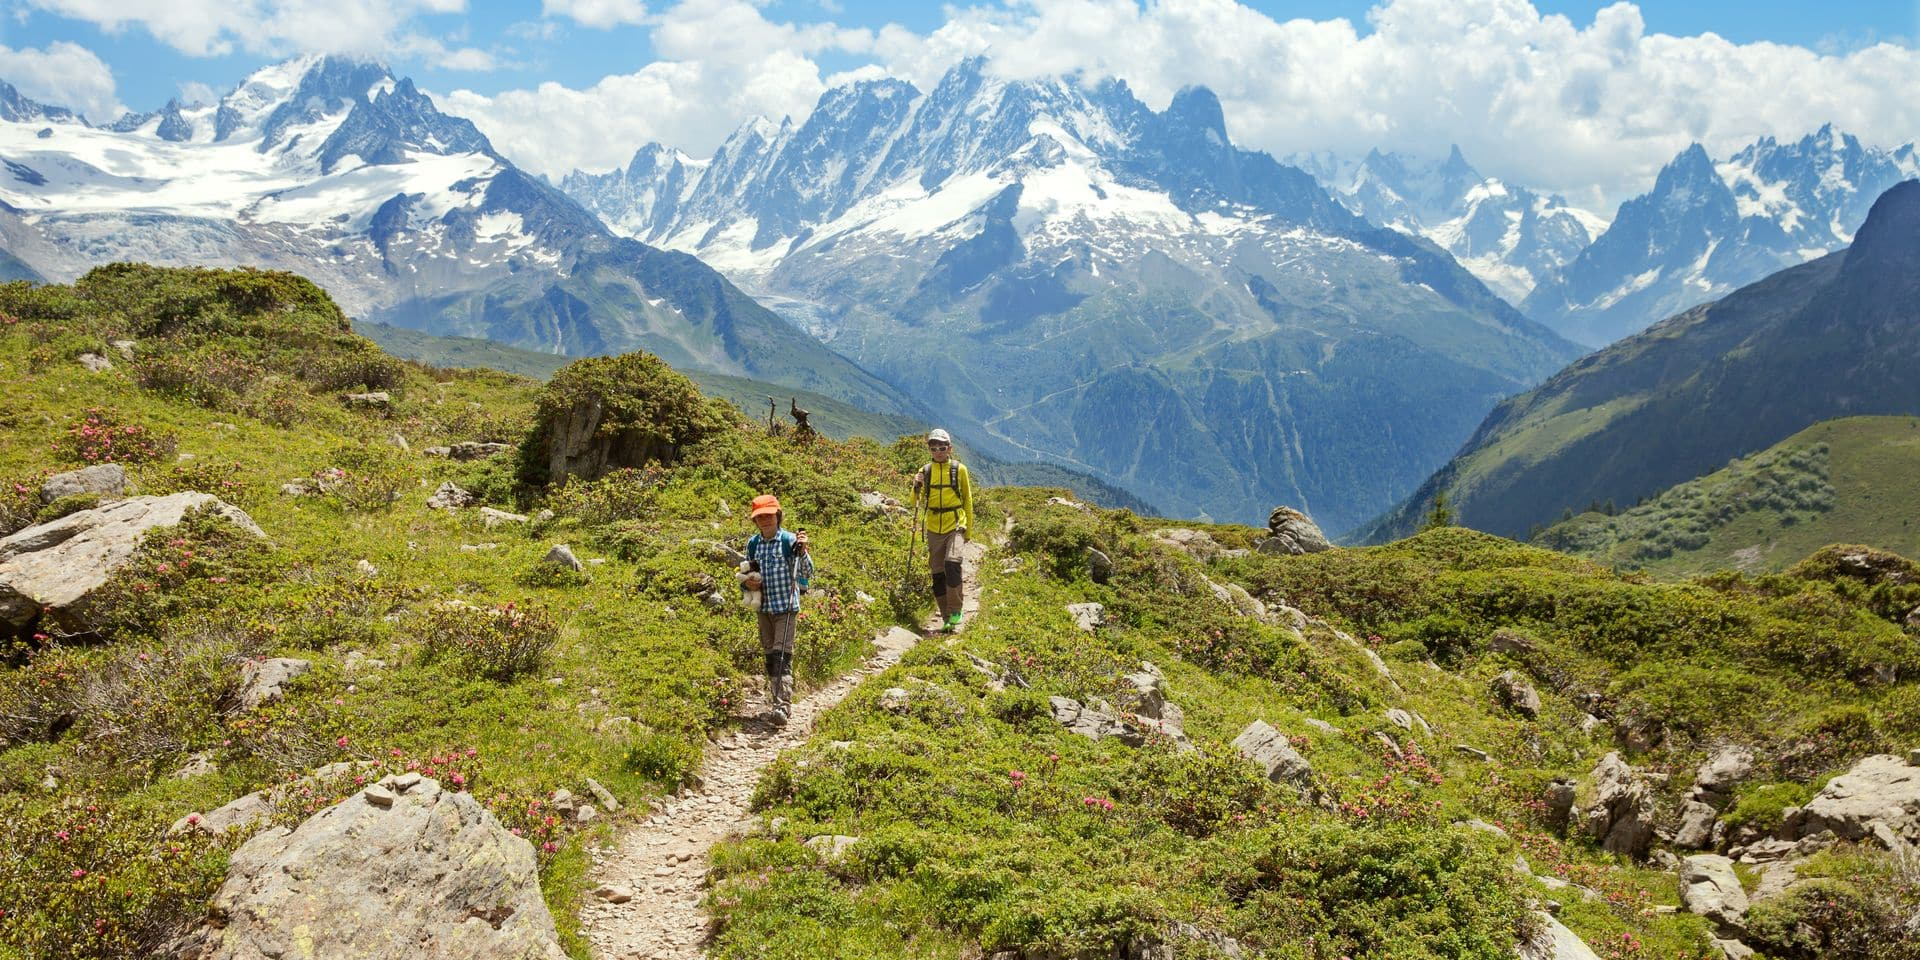 Two,Boys,Are,Hiking,In,Summer,Mountains,,France